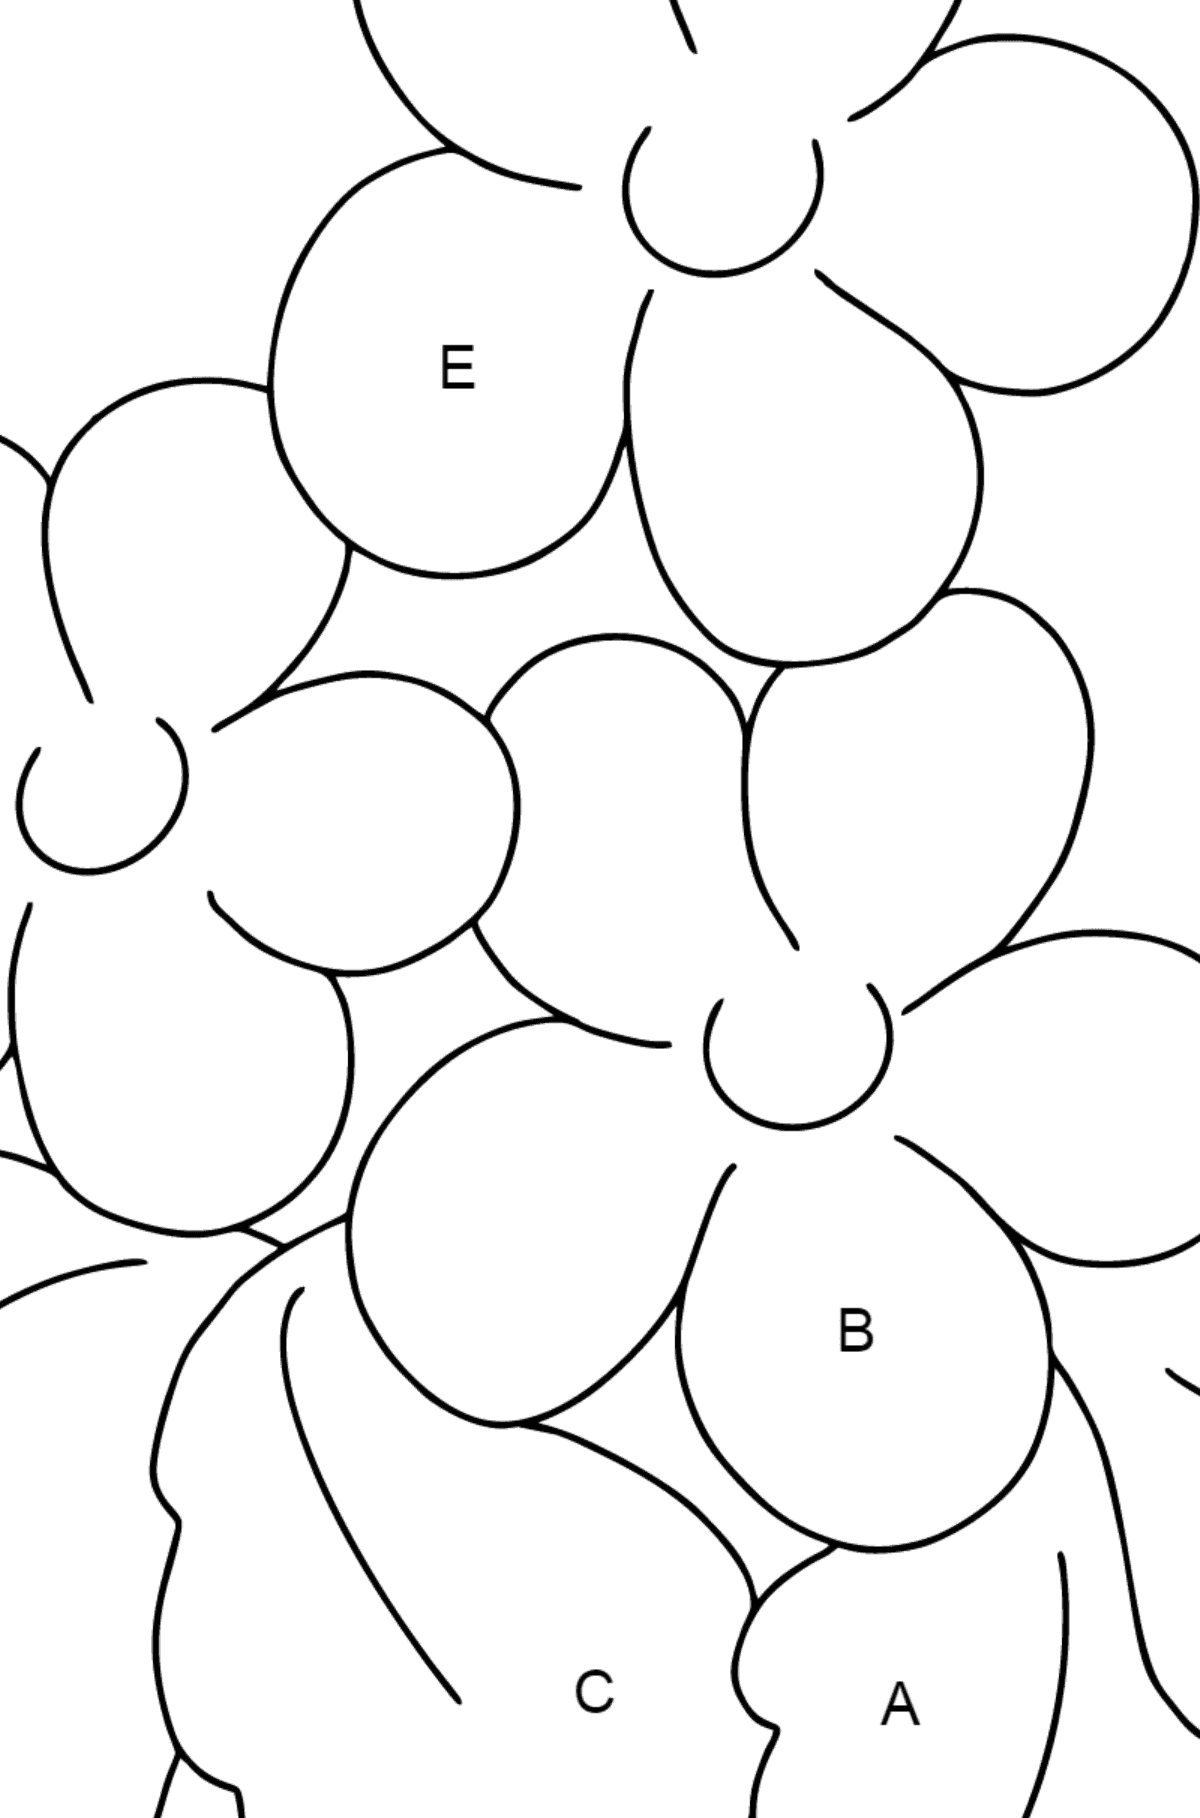 Coloring Page - Spring and Flowers - Coloring by Letters for Kids